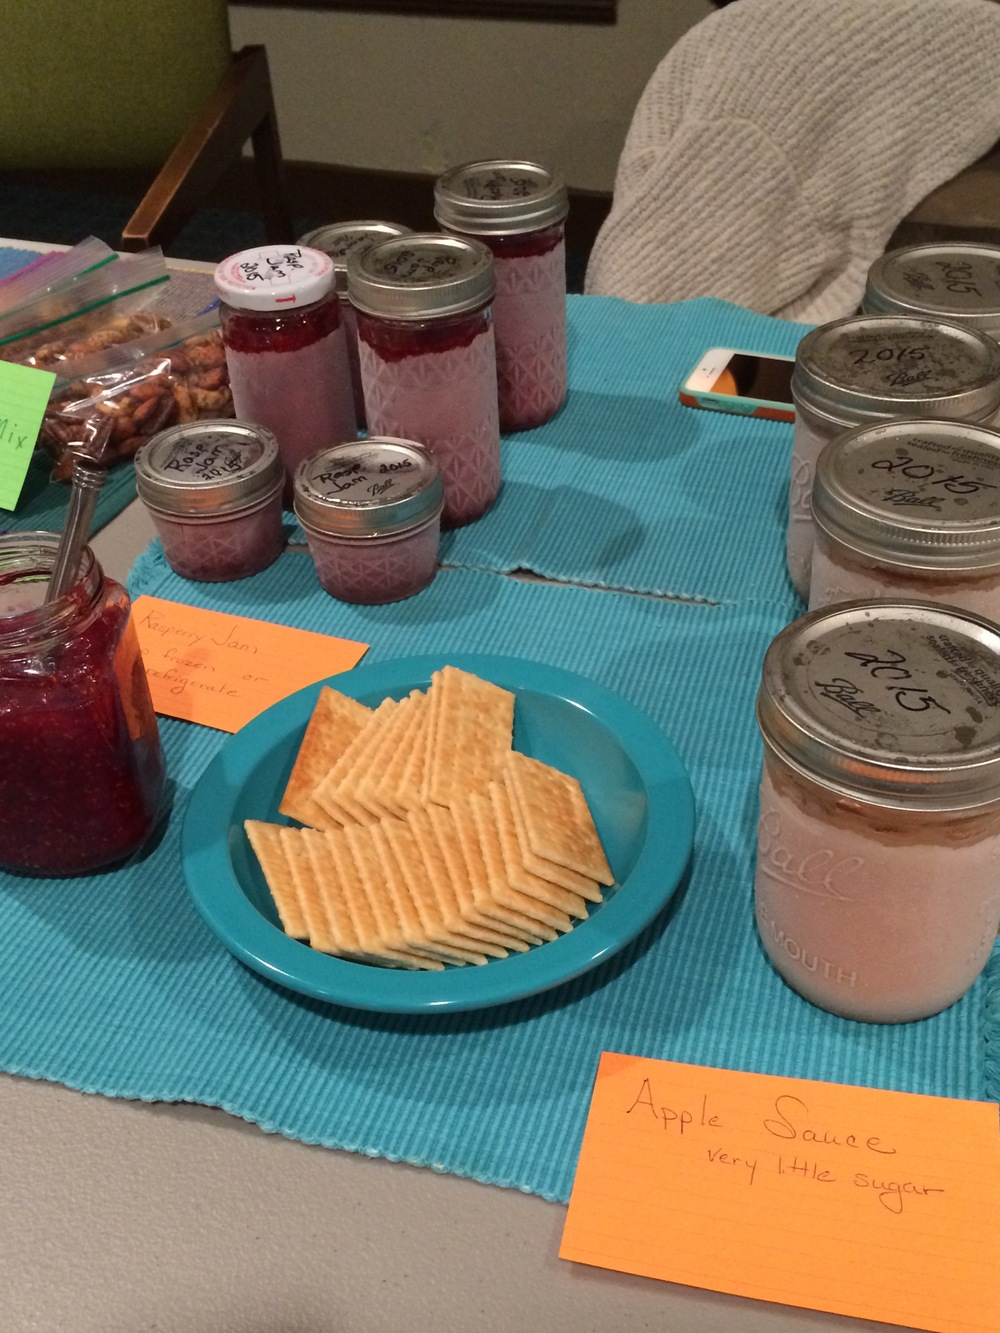 Freezer Raspberry Jam and lightly sweetened Applesauce from Swapper Carol was a beautiful example of preserving the local produce season's bounty.